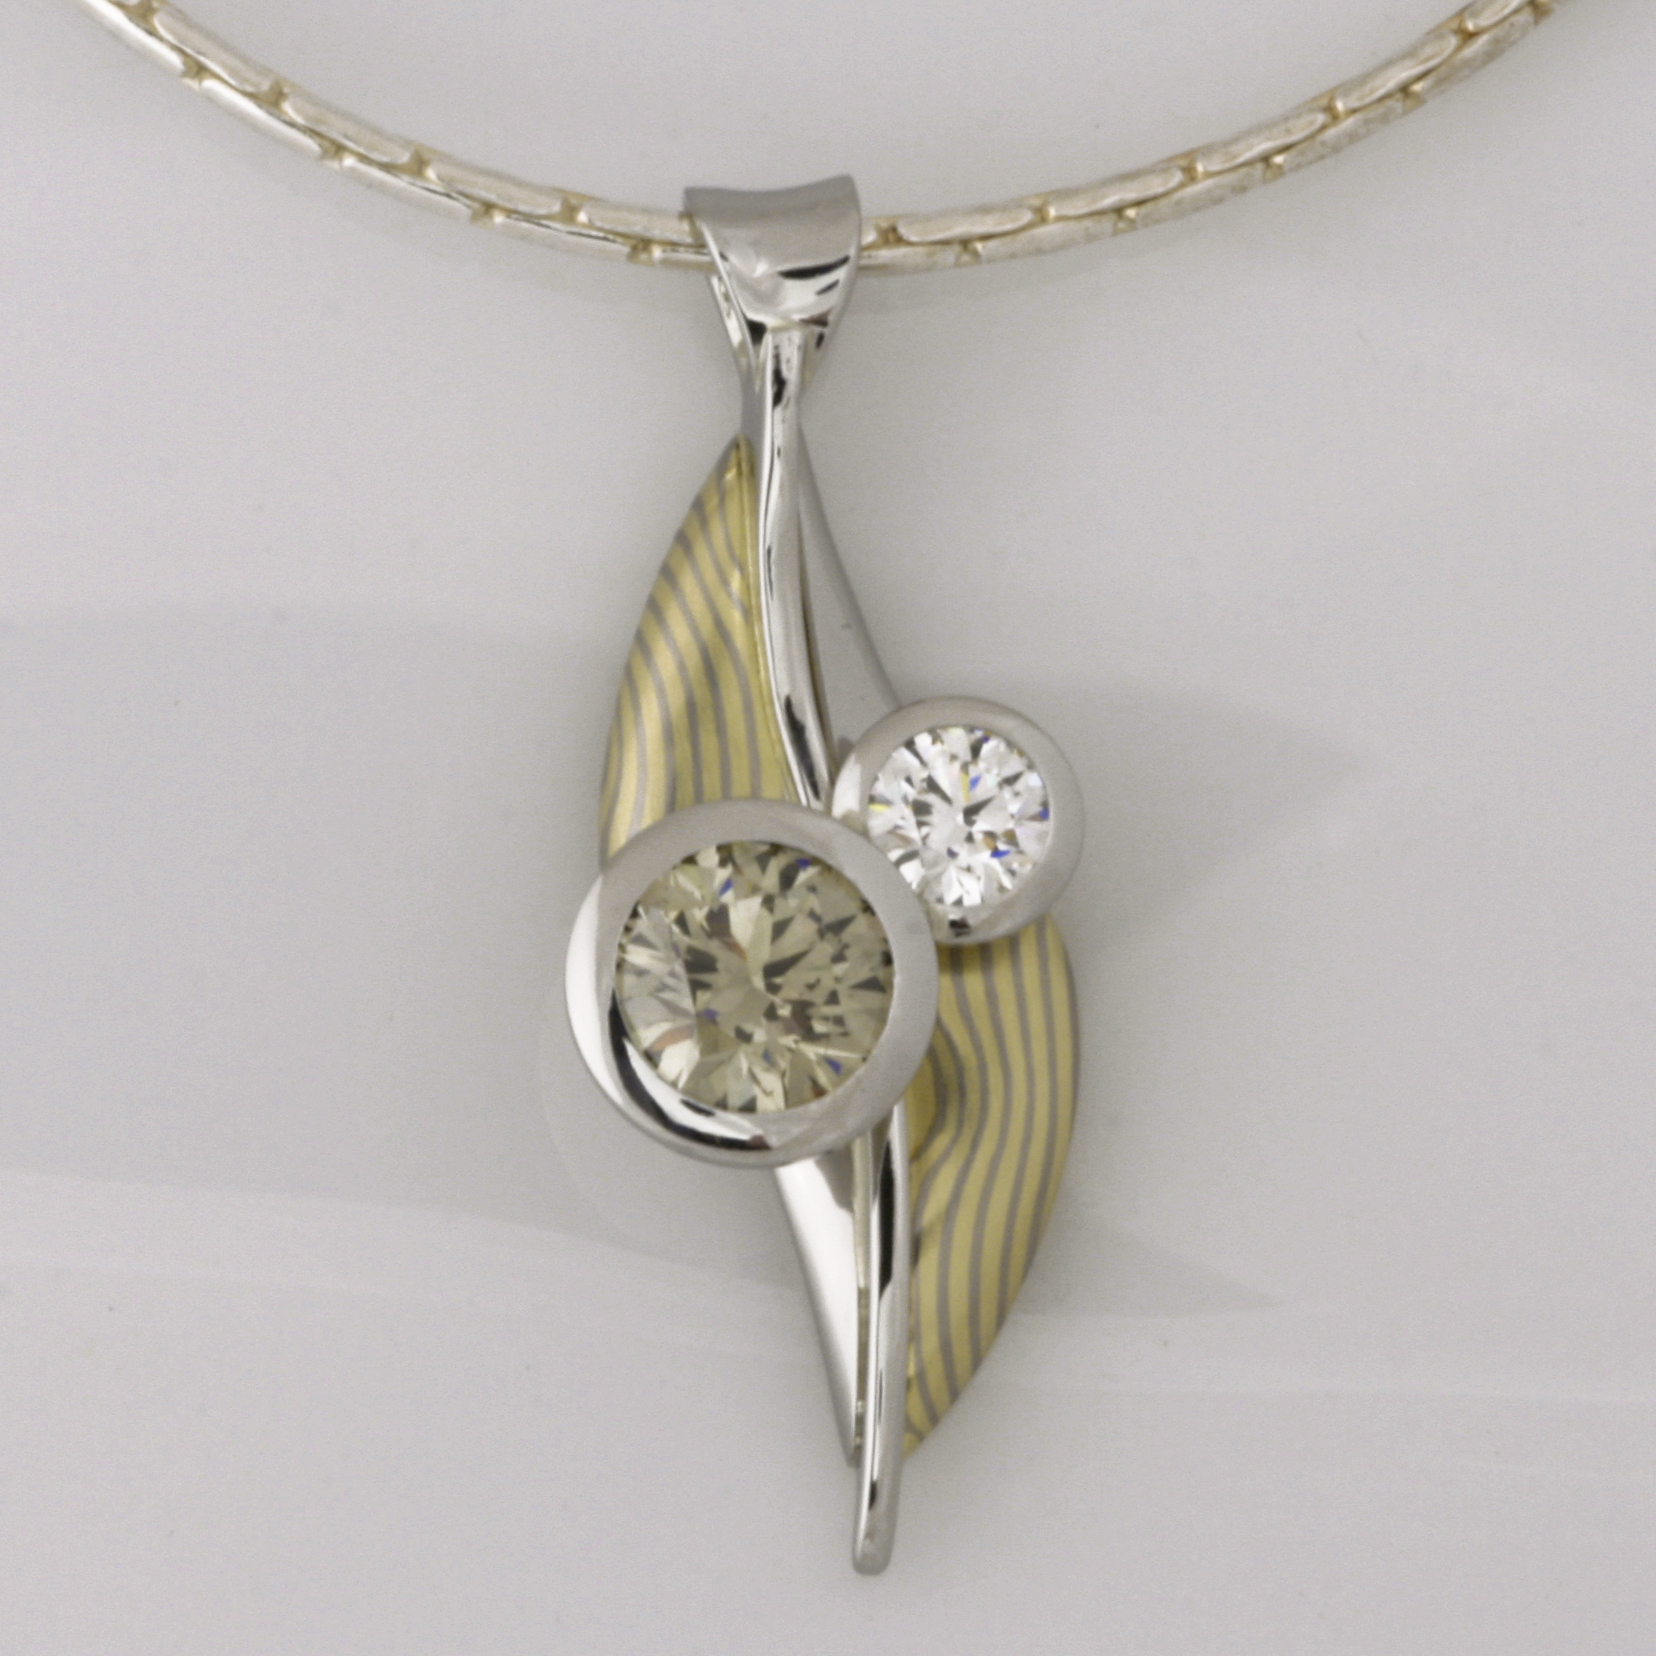 Handmade platinum and 18ct green and white gold Mokume Gane with one green and white EightStar diamond pendant